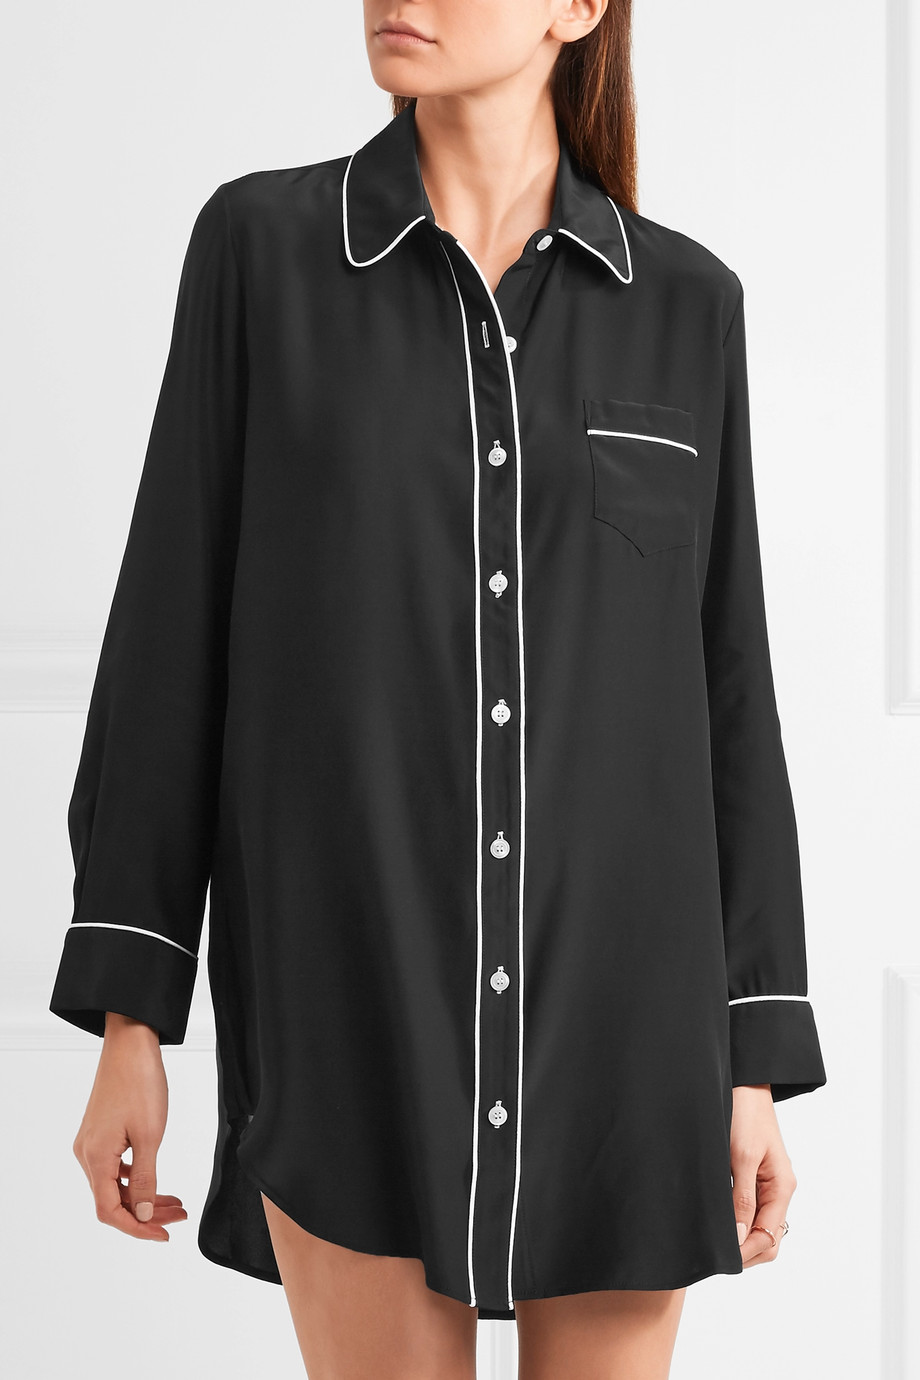 silk-satin-night-shirt-piping-pajamas